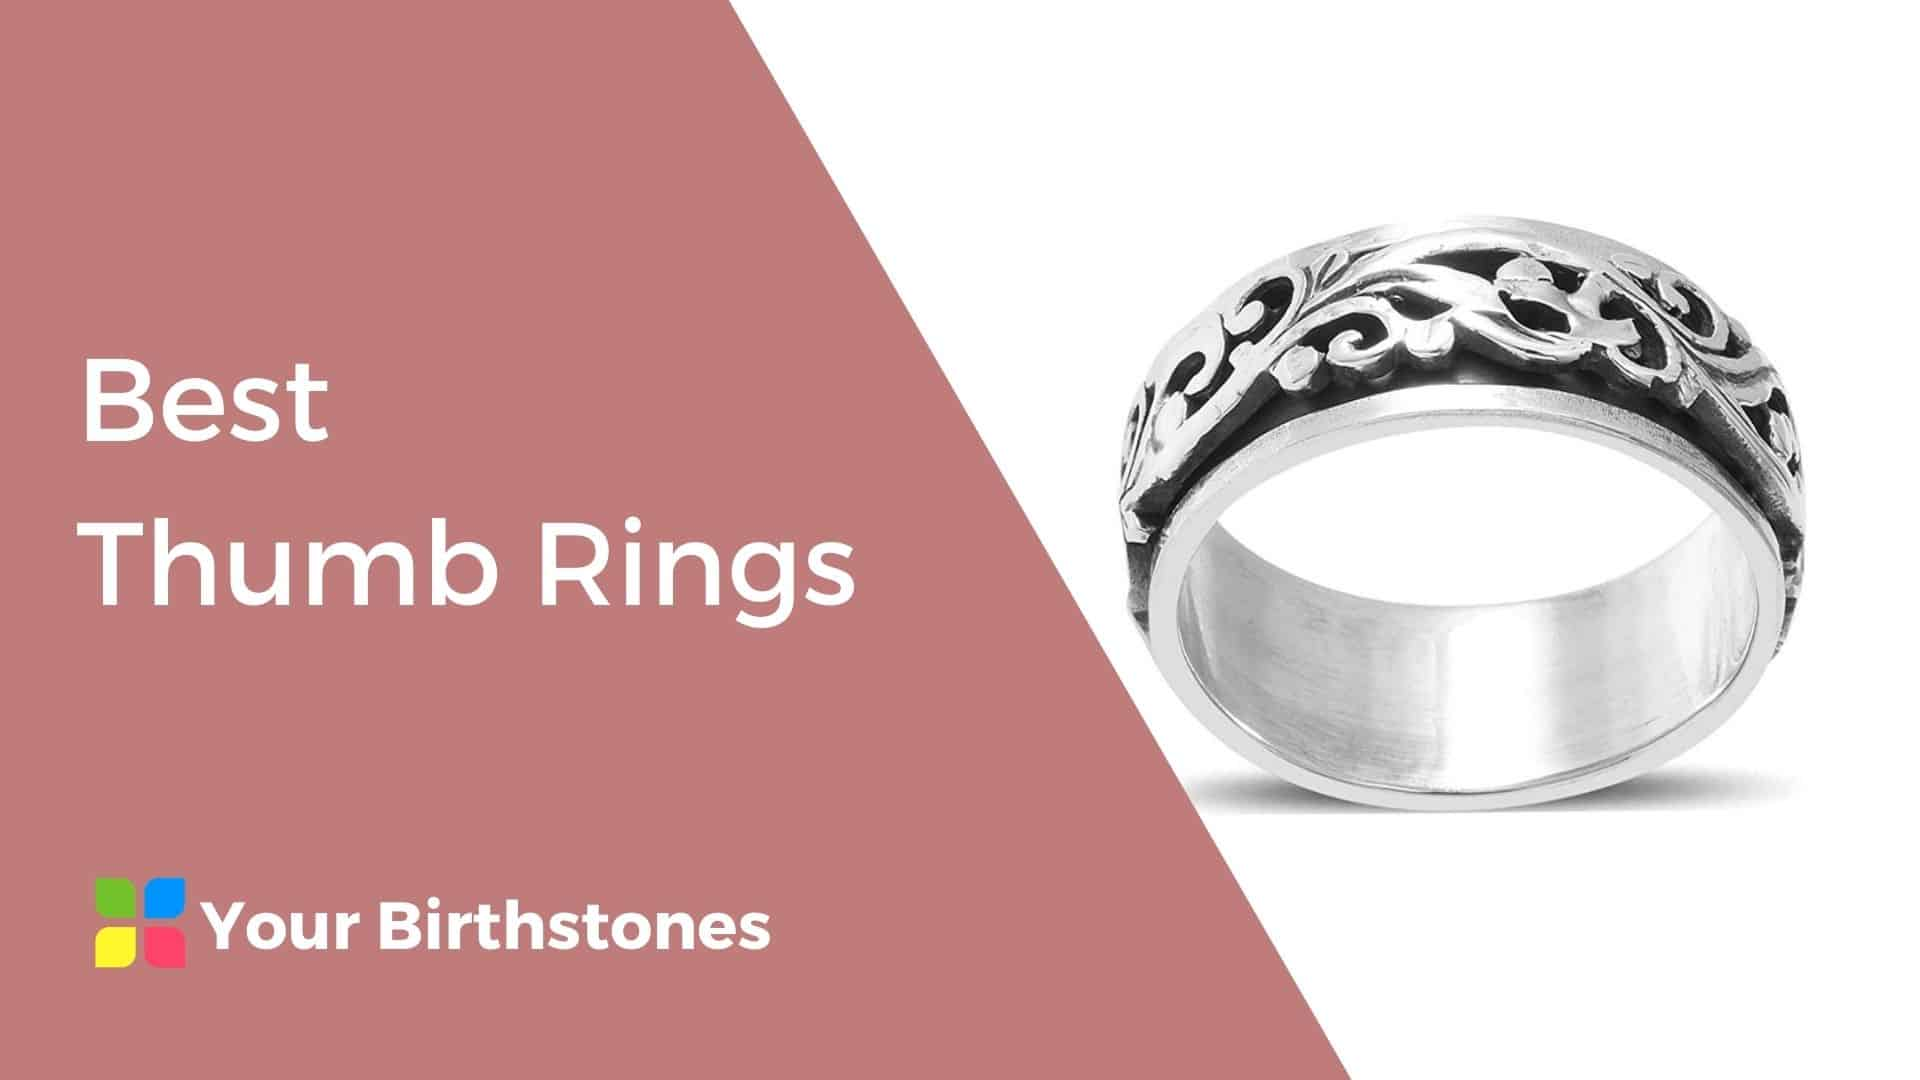 Best Thumb Rings